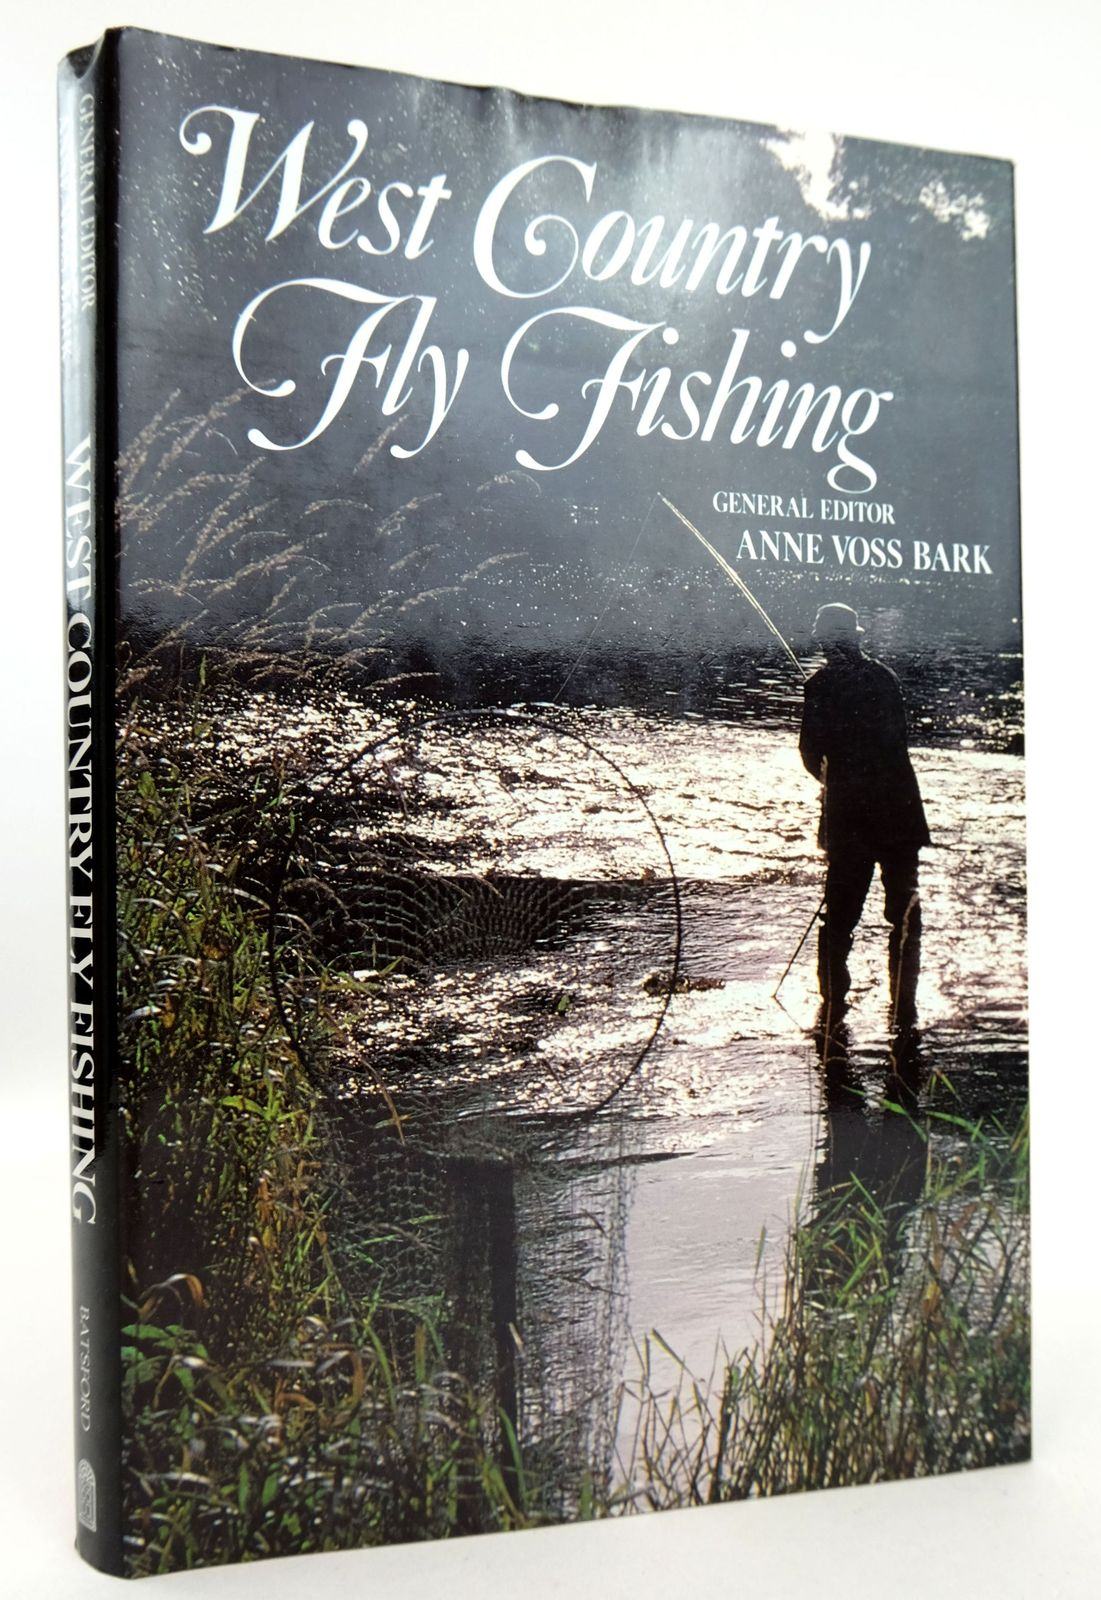 Photo of WEST COUNTRY FLY FISHING written by Voss Bark, Anne published by B.T. Batsford (STOCK CODE: 1819203)  for sale by Stella & Rose's Books